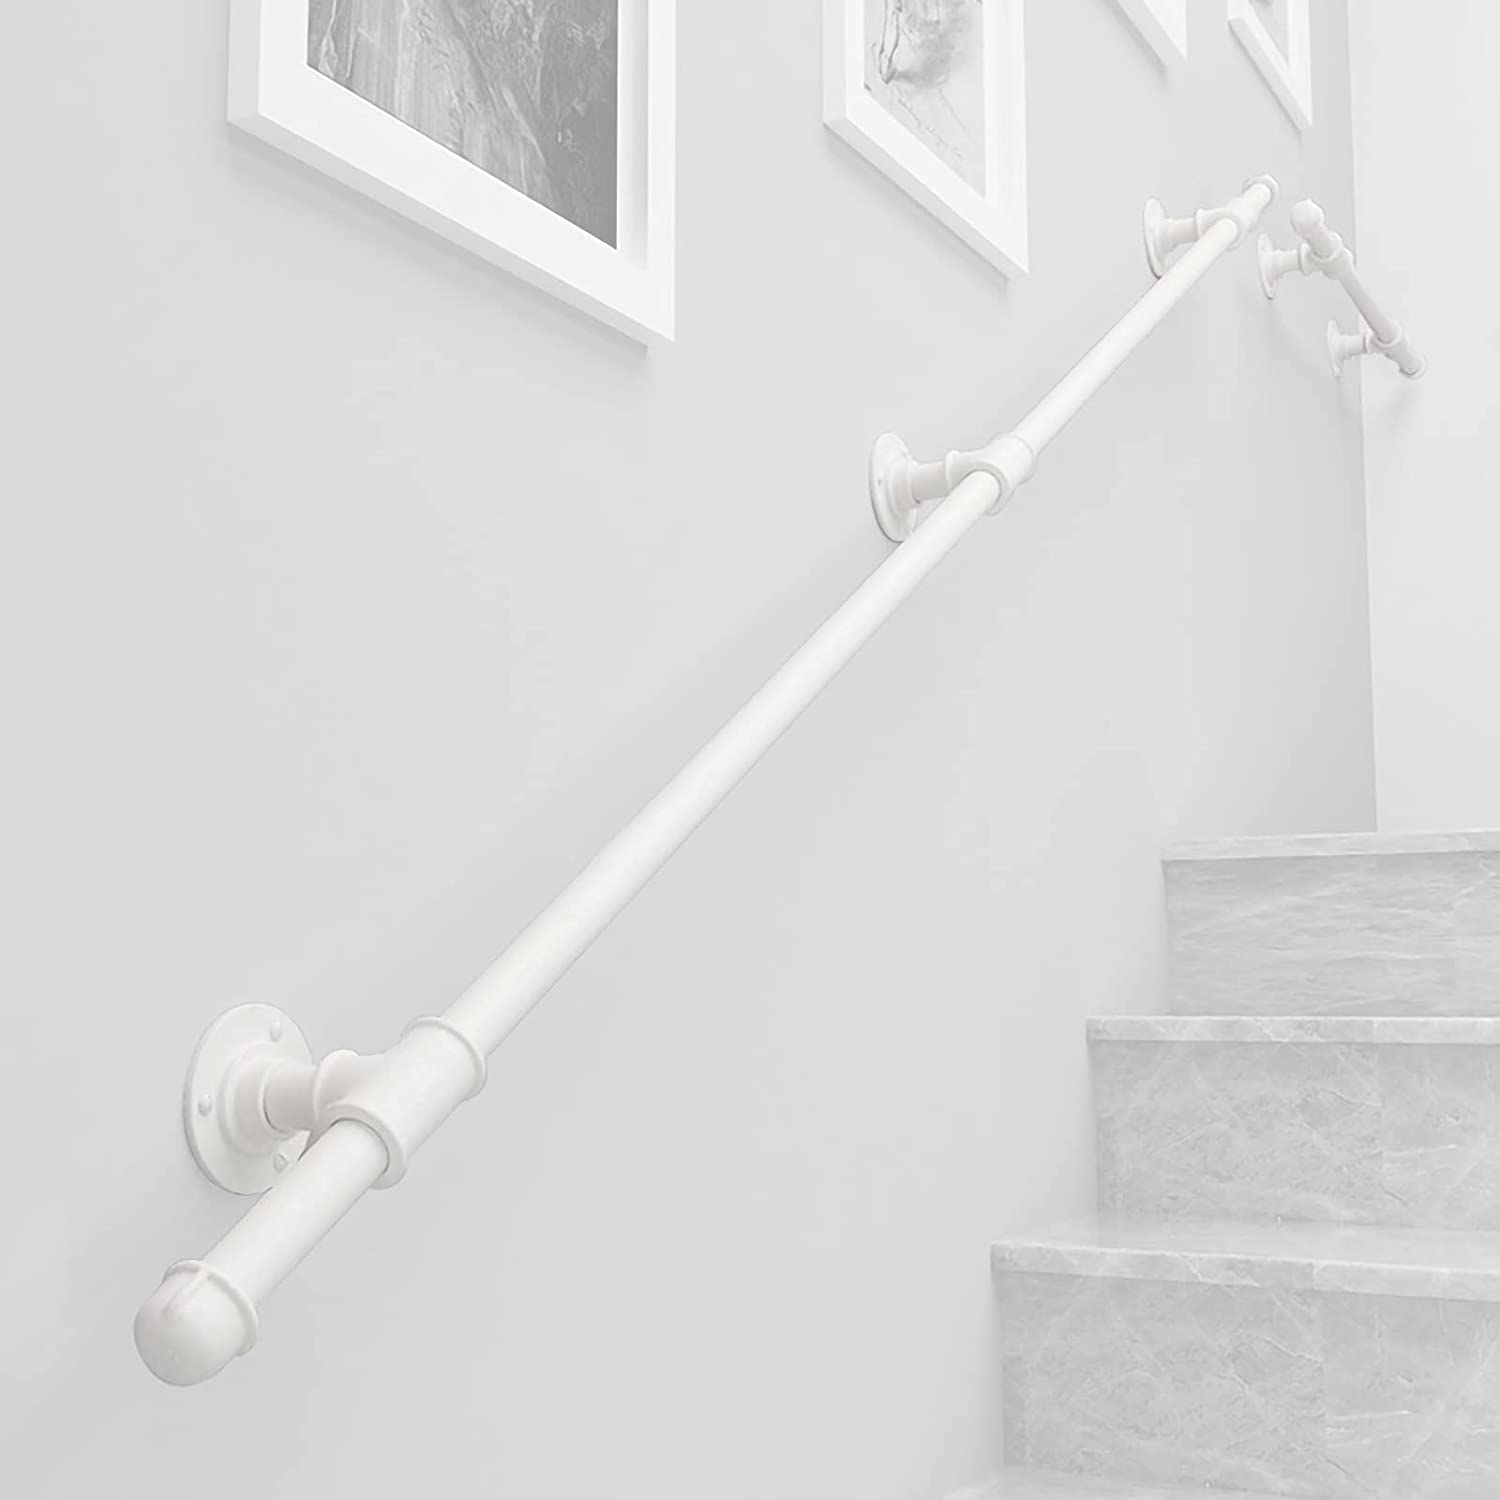 qiaosiye Stair Railing Kit Indoor Brackets Popular New product!! brand Handrail St with for